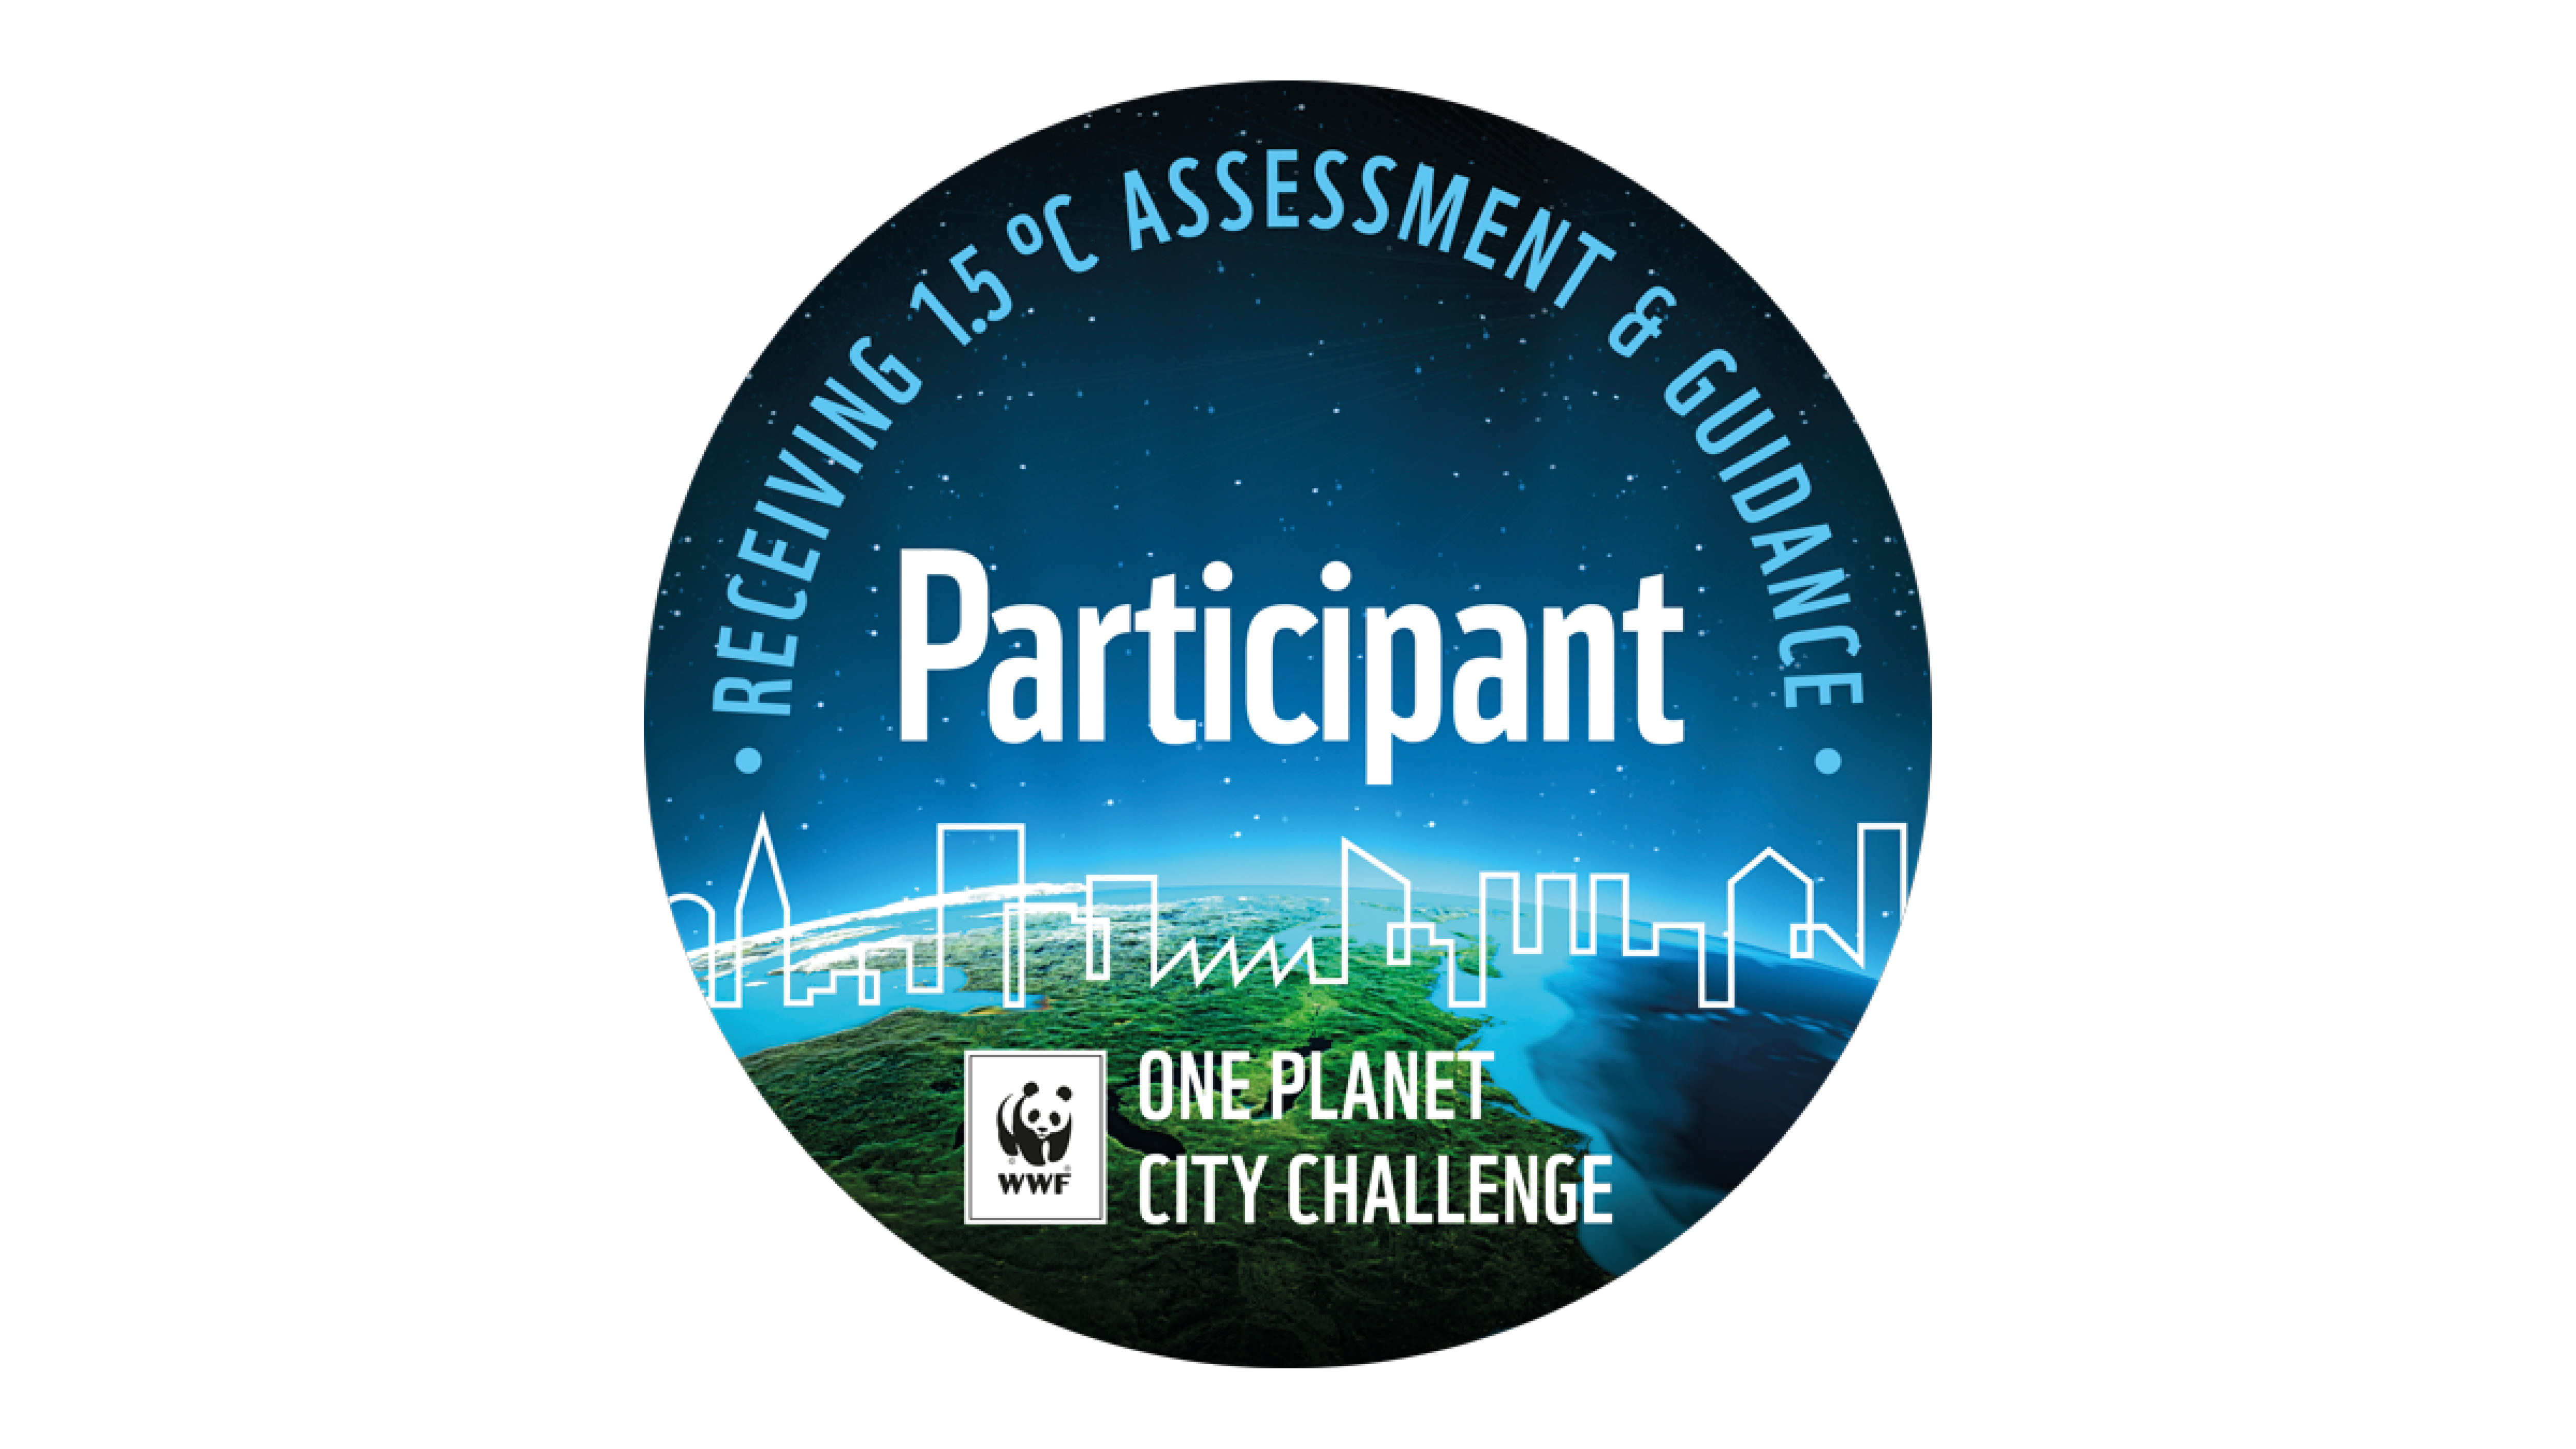 One Planet City Challenge.